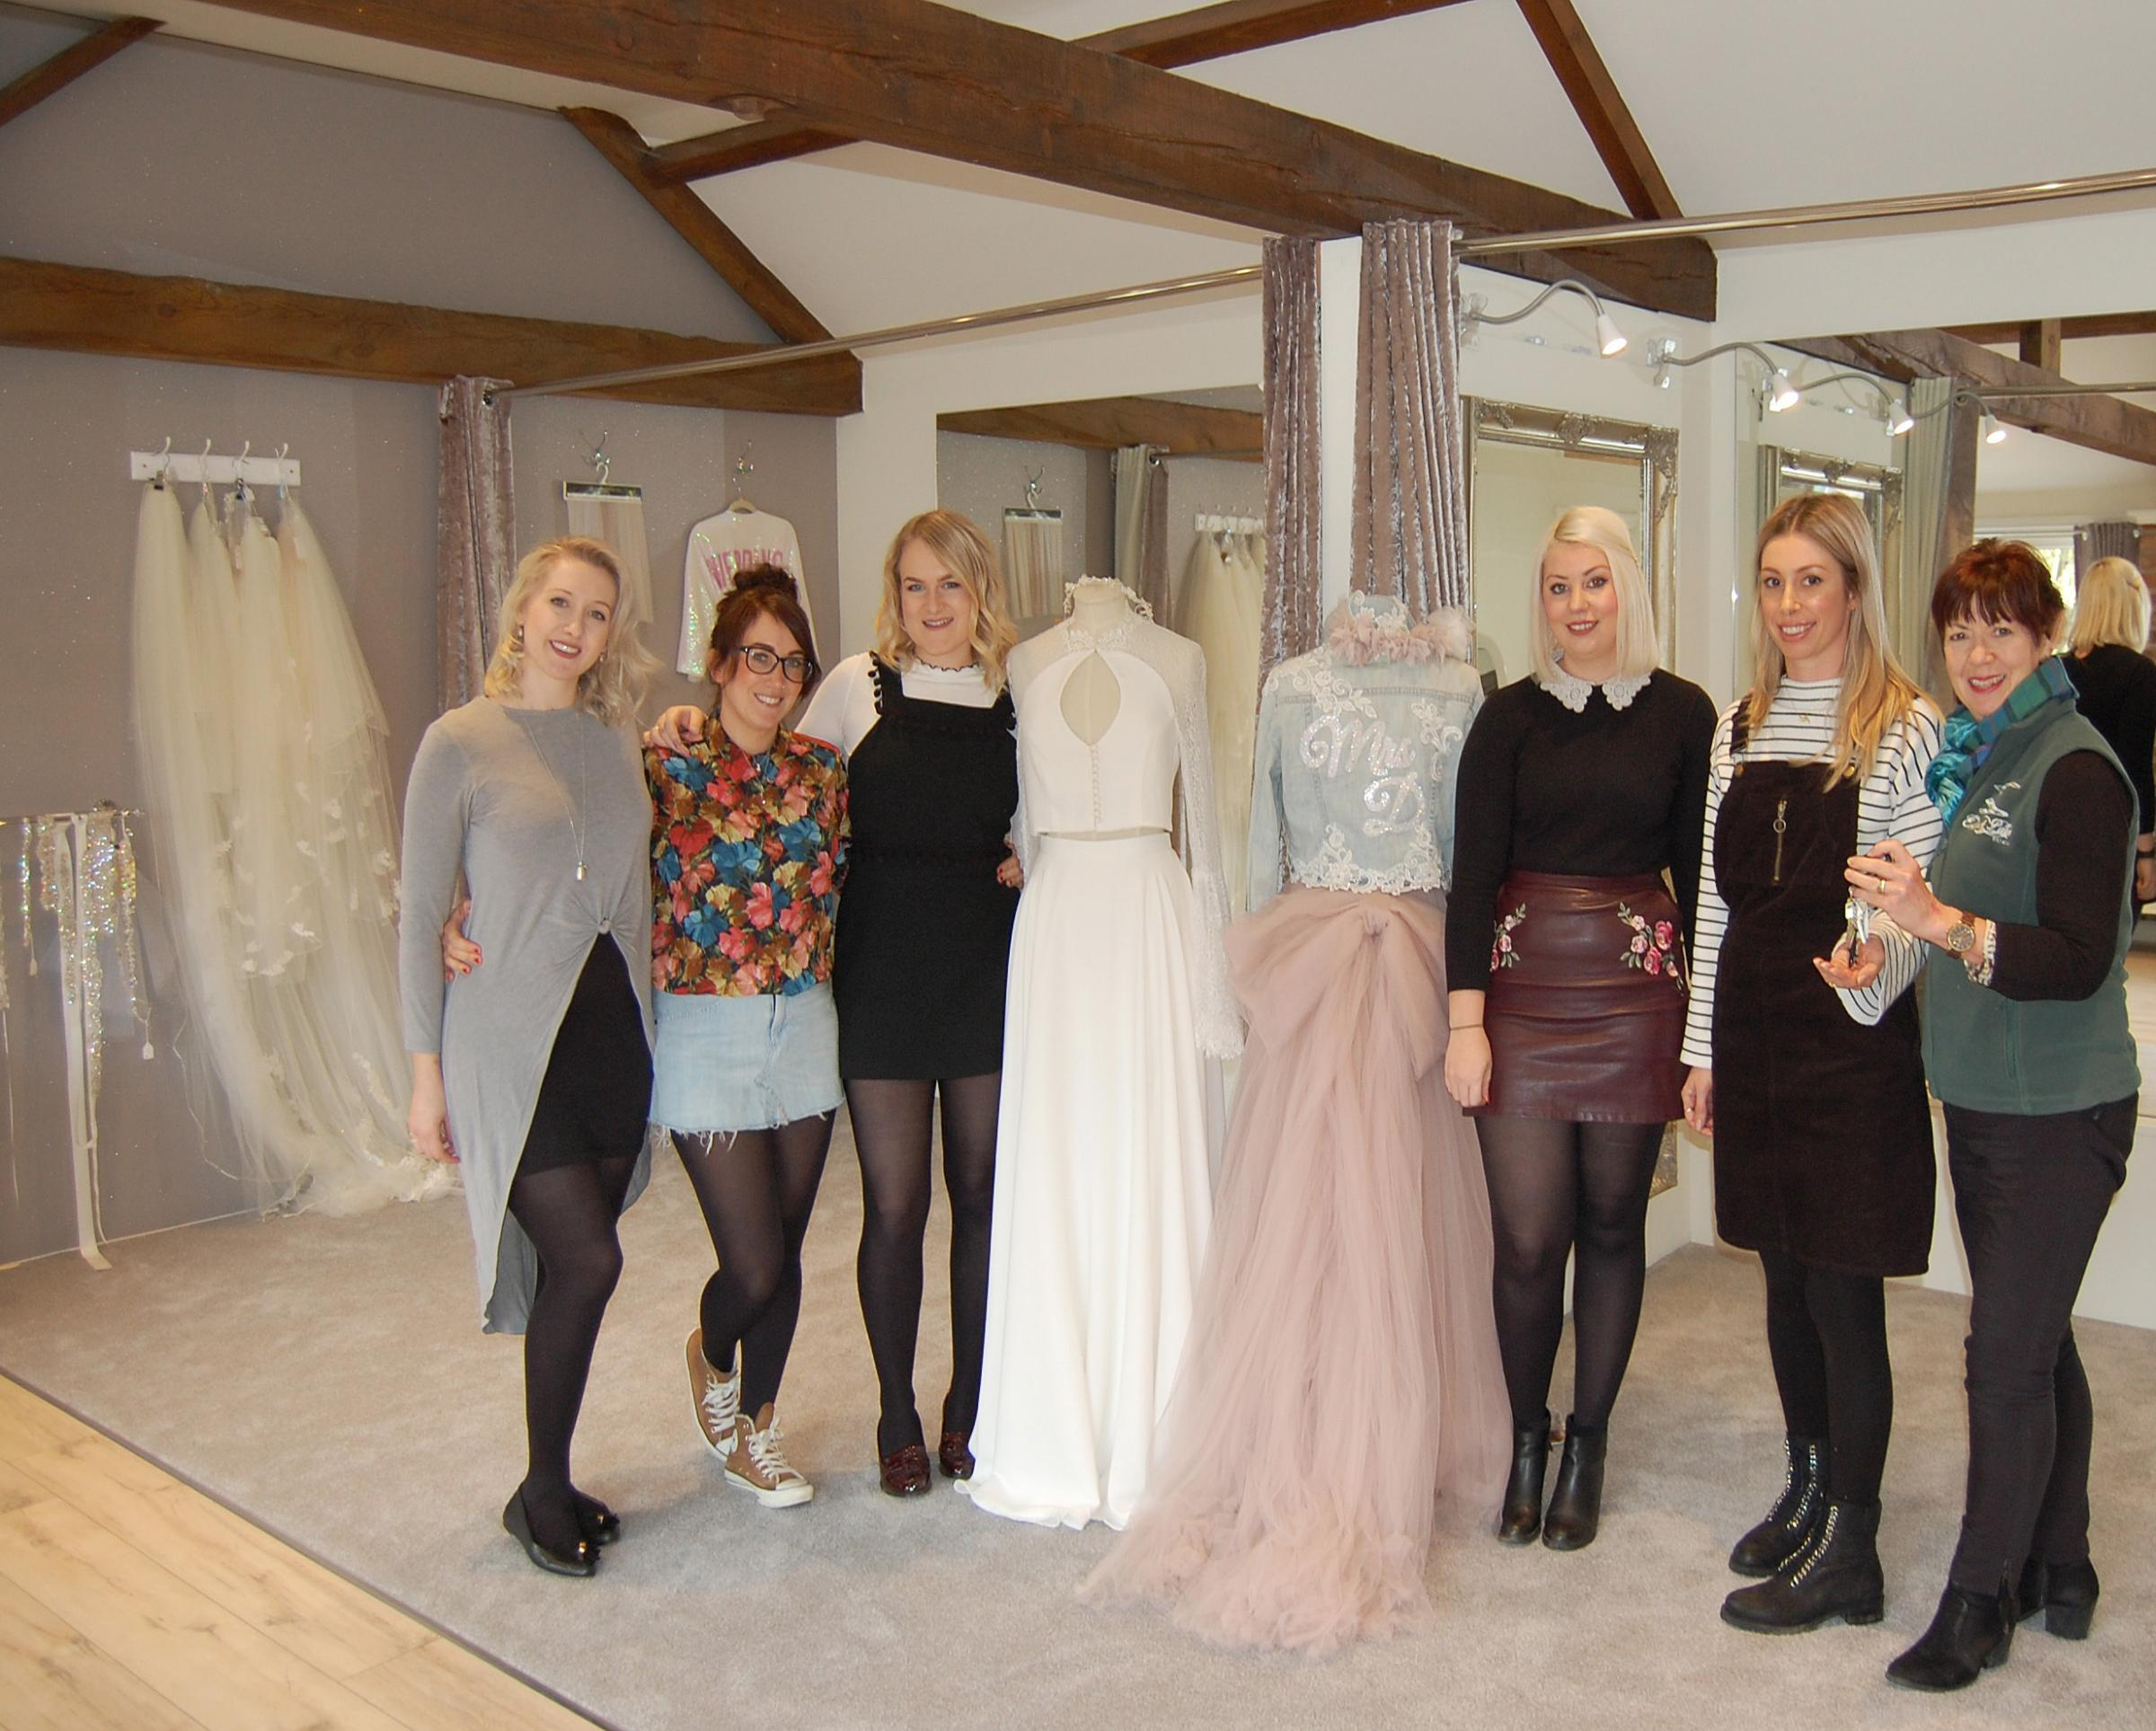 The Once Upon A Dress team, from left,: Rachel Davies, Samantha Rowley, Aimee Bullock, Robbie Wilson and Jade Wrigglesworth with Helen Pentith of Escrick Park Estate